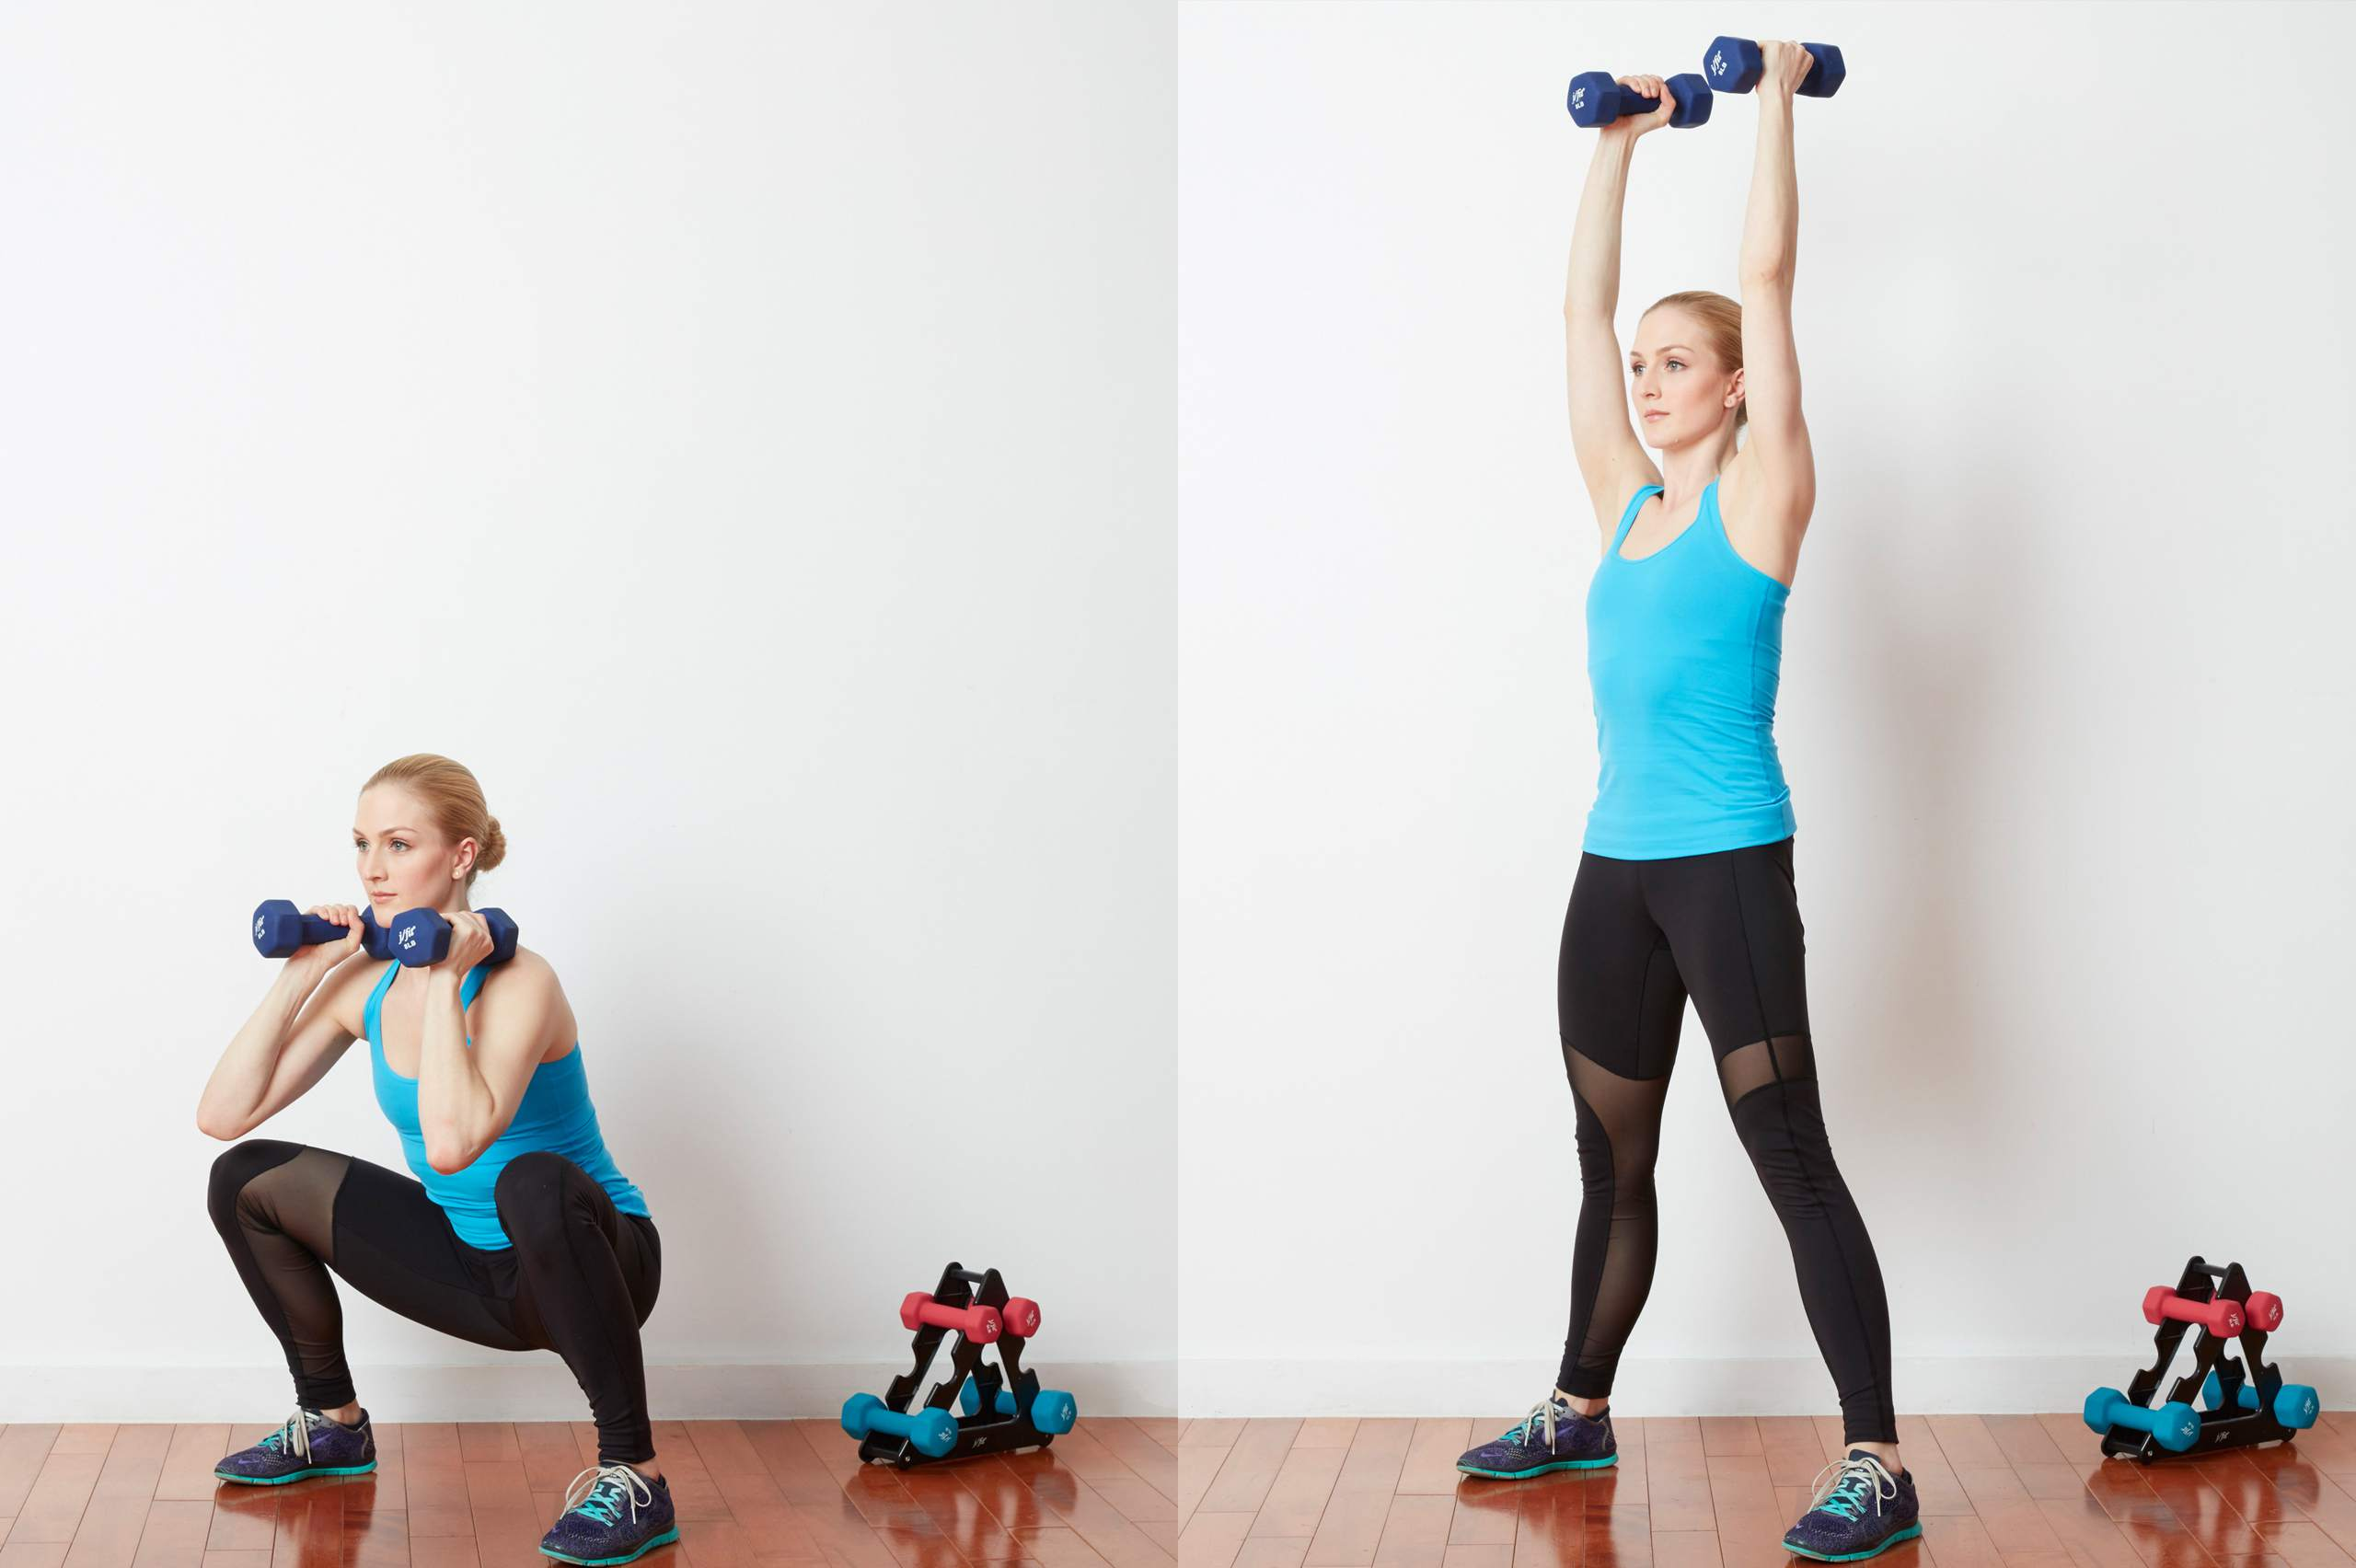 Squat, Curl, and Press Exercises for the Entire Body